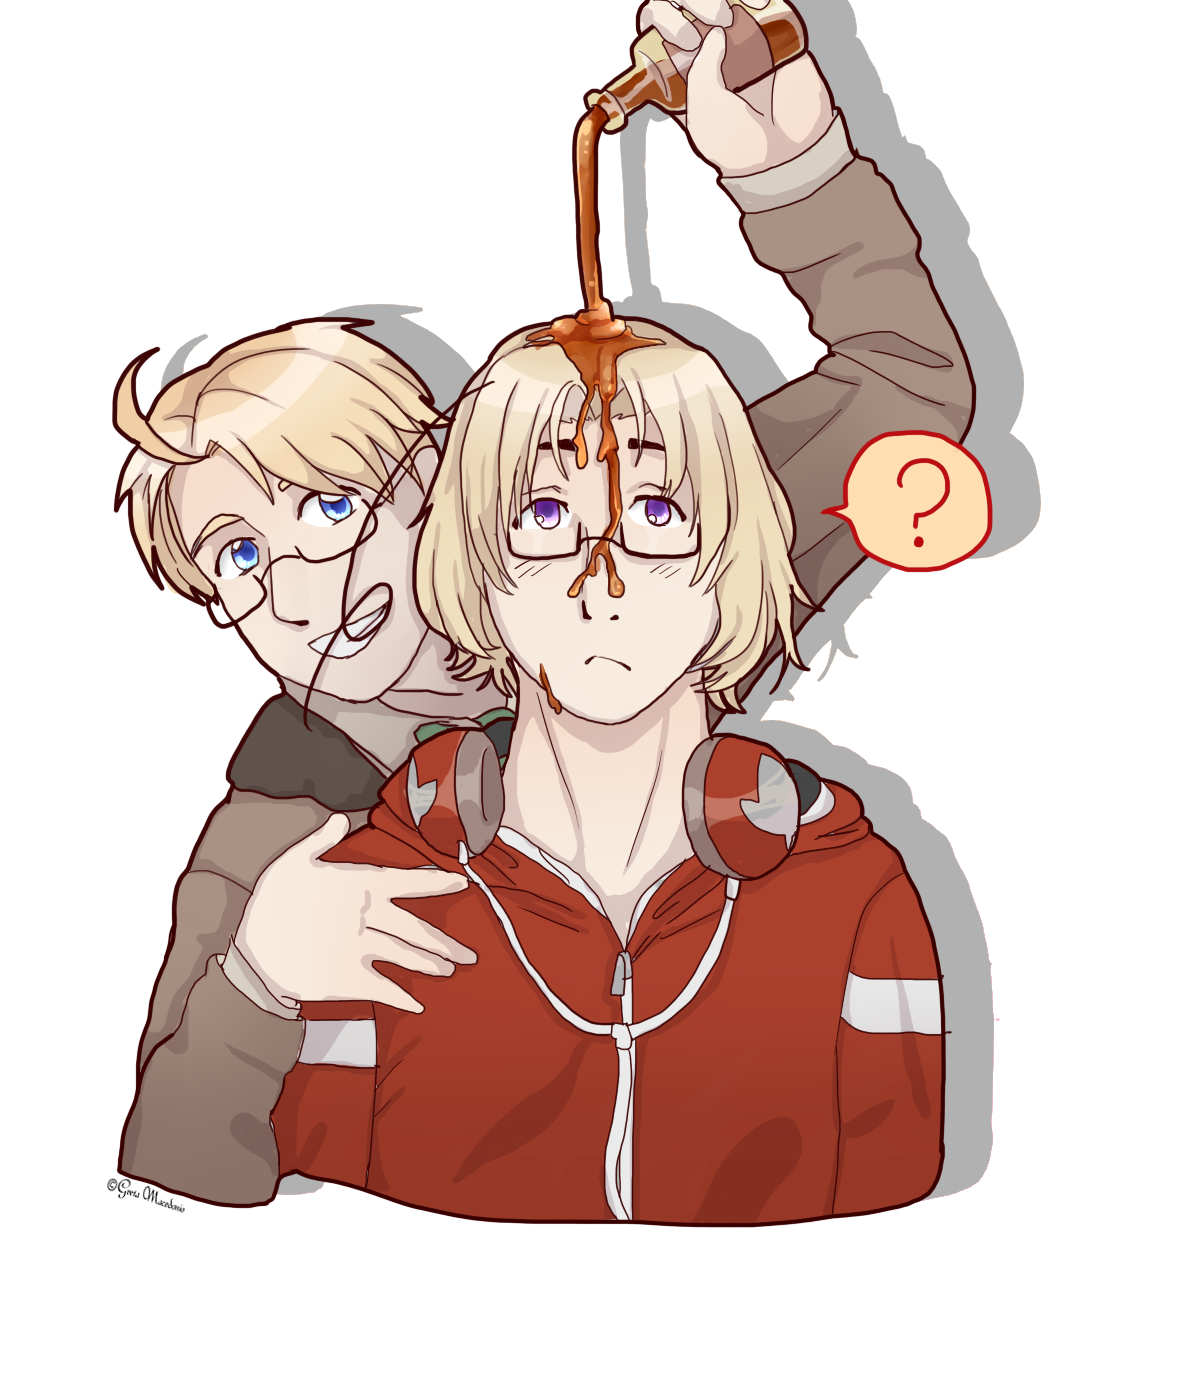 Fencing drawing hetalia. Pouring maple syrup by